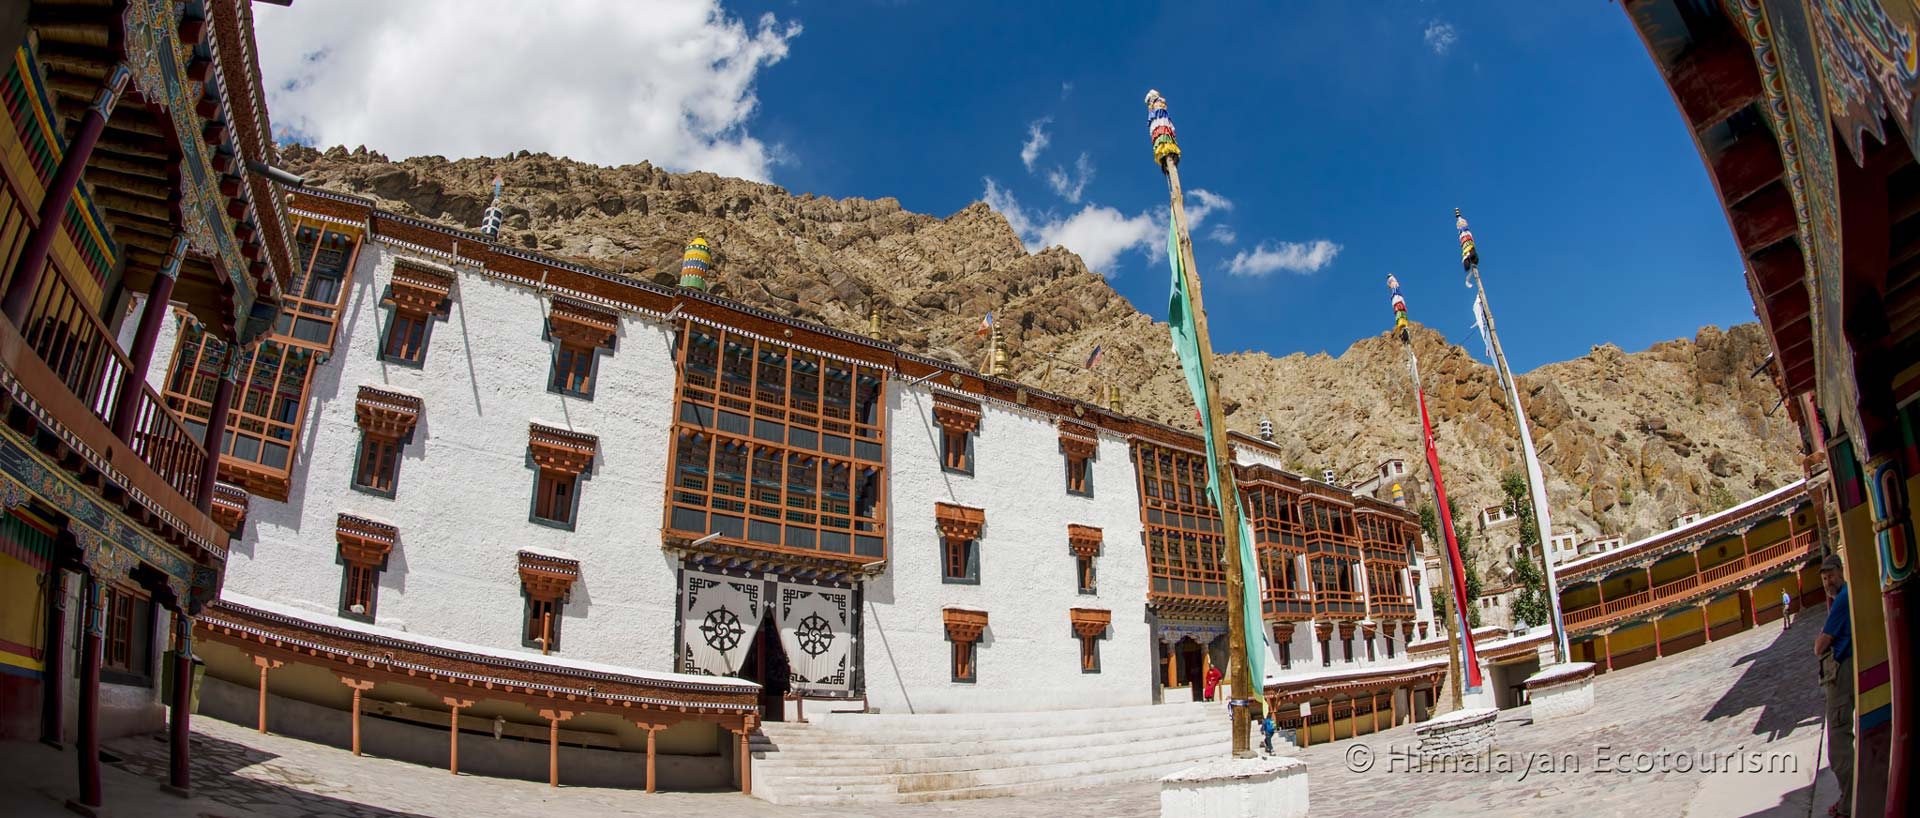 The Hemis monastery, Ladakh